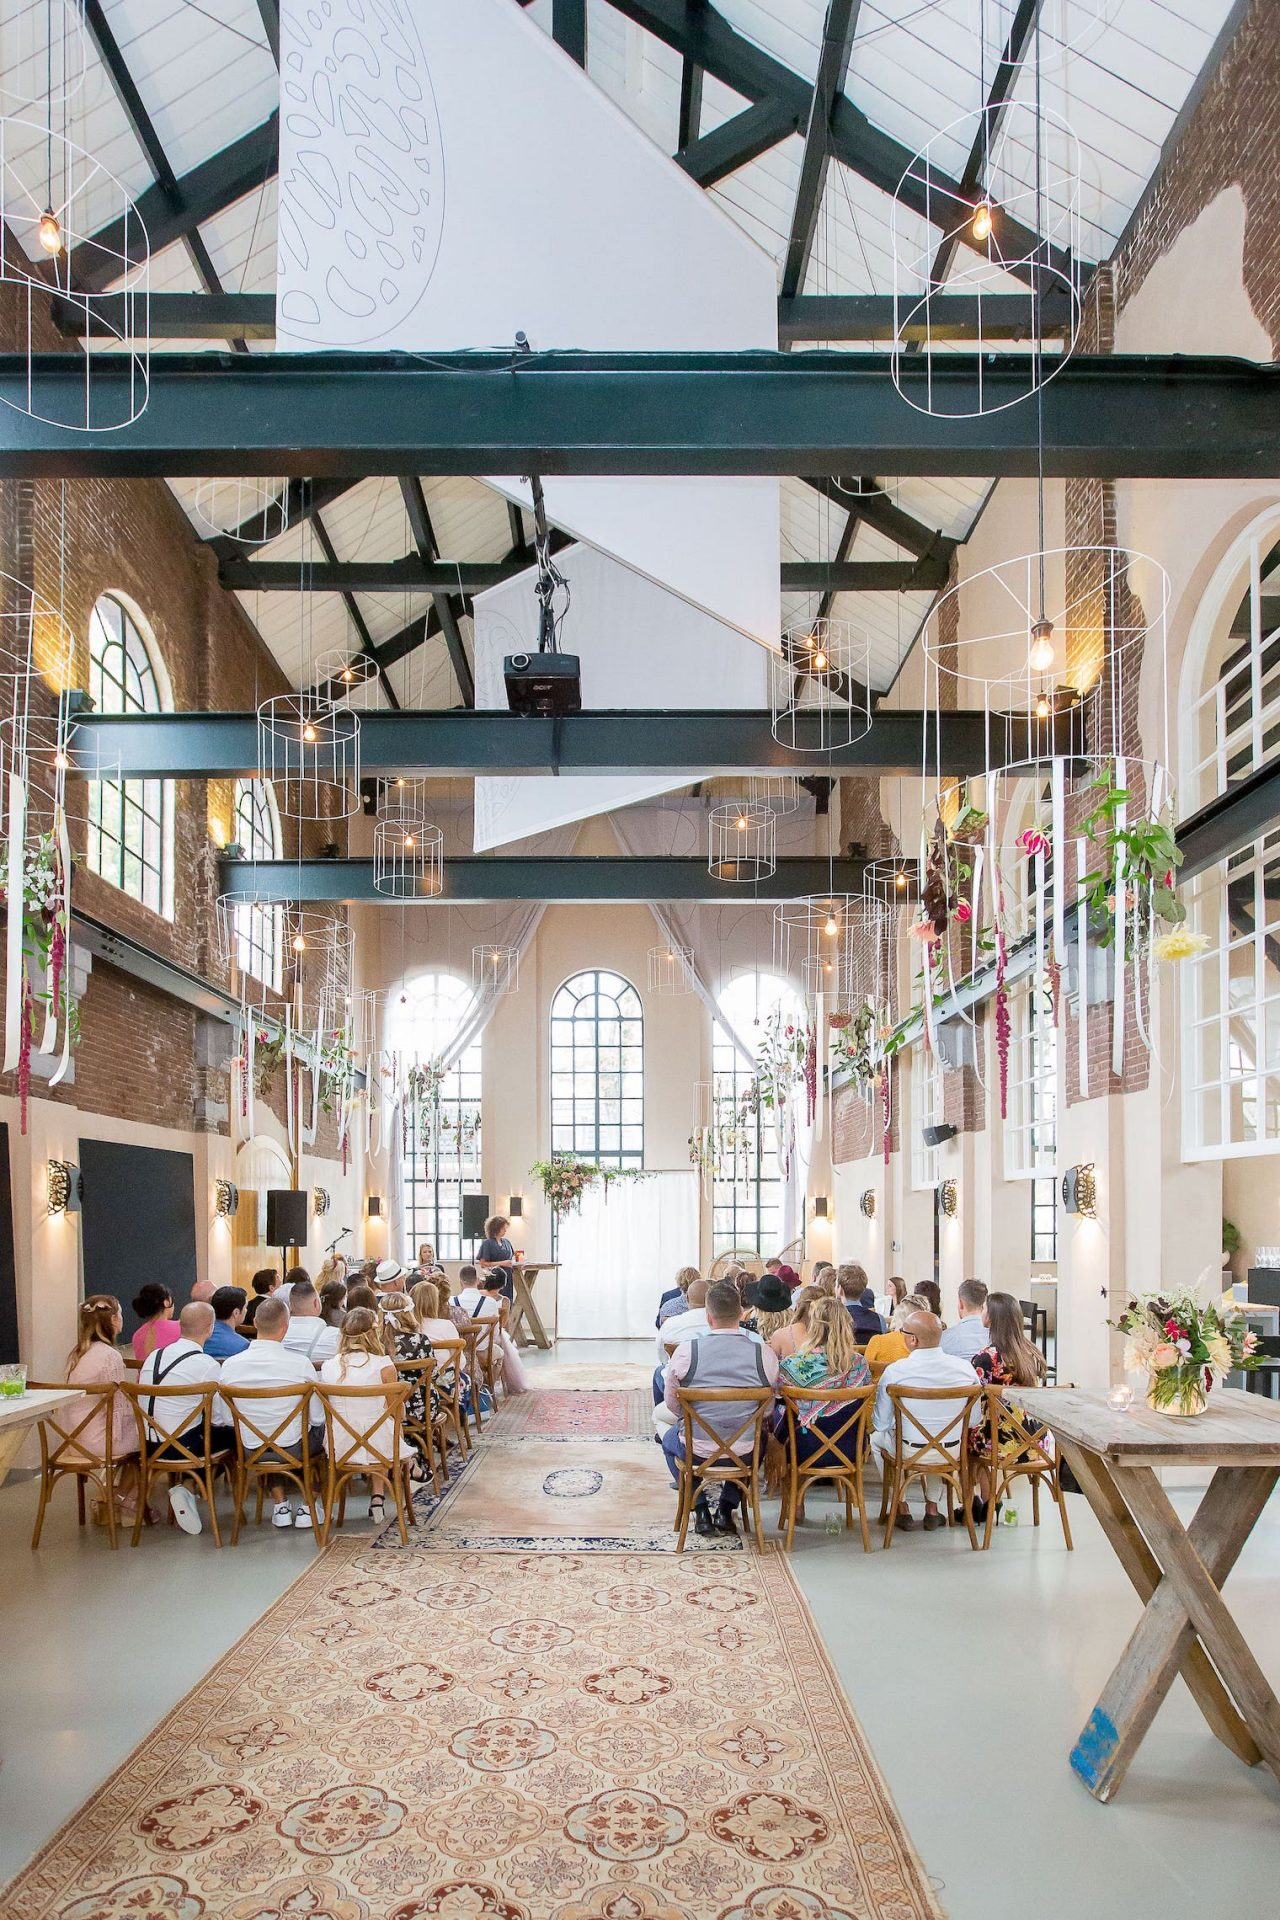 Boho chic wedding with an industrial touch: Explore by Lute